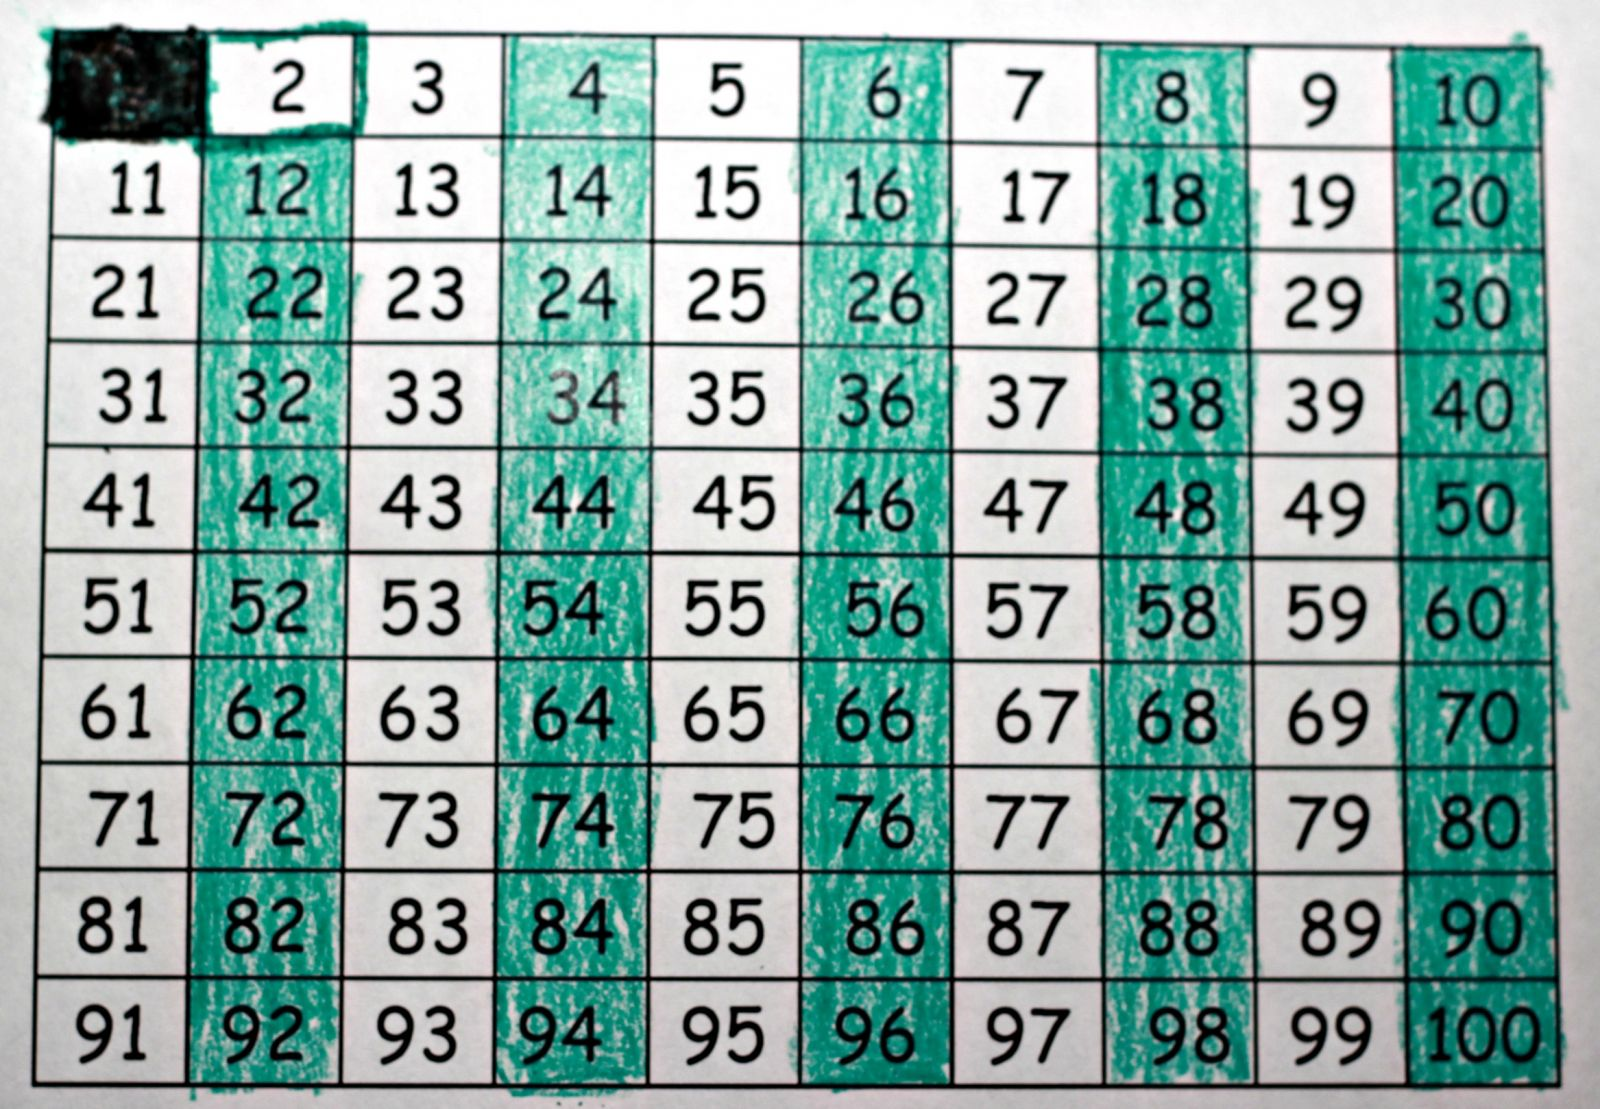 Prime Composite Numbers Worksheet